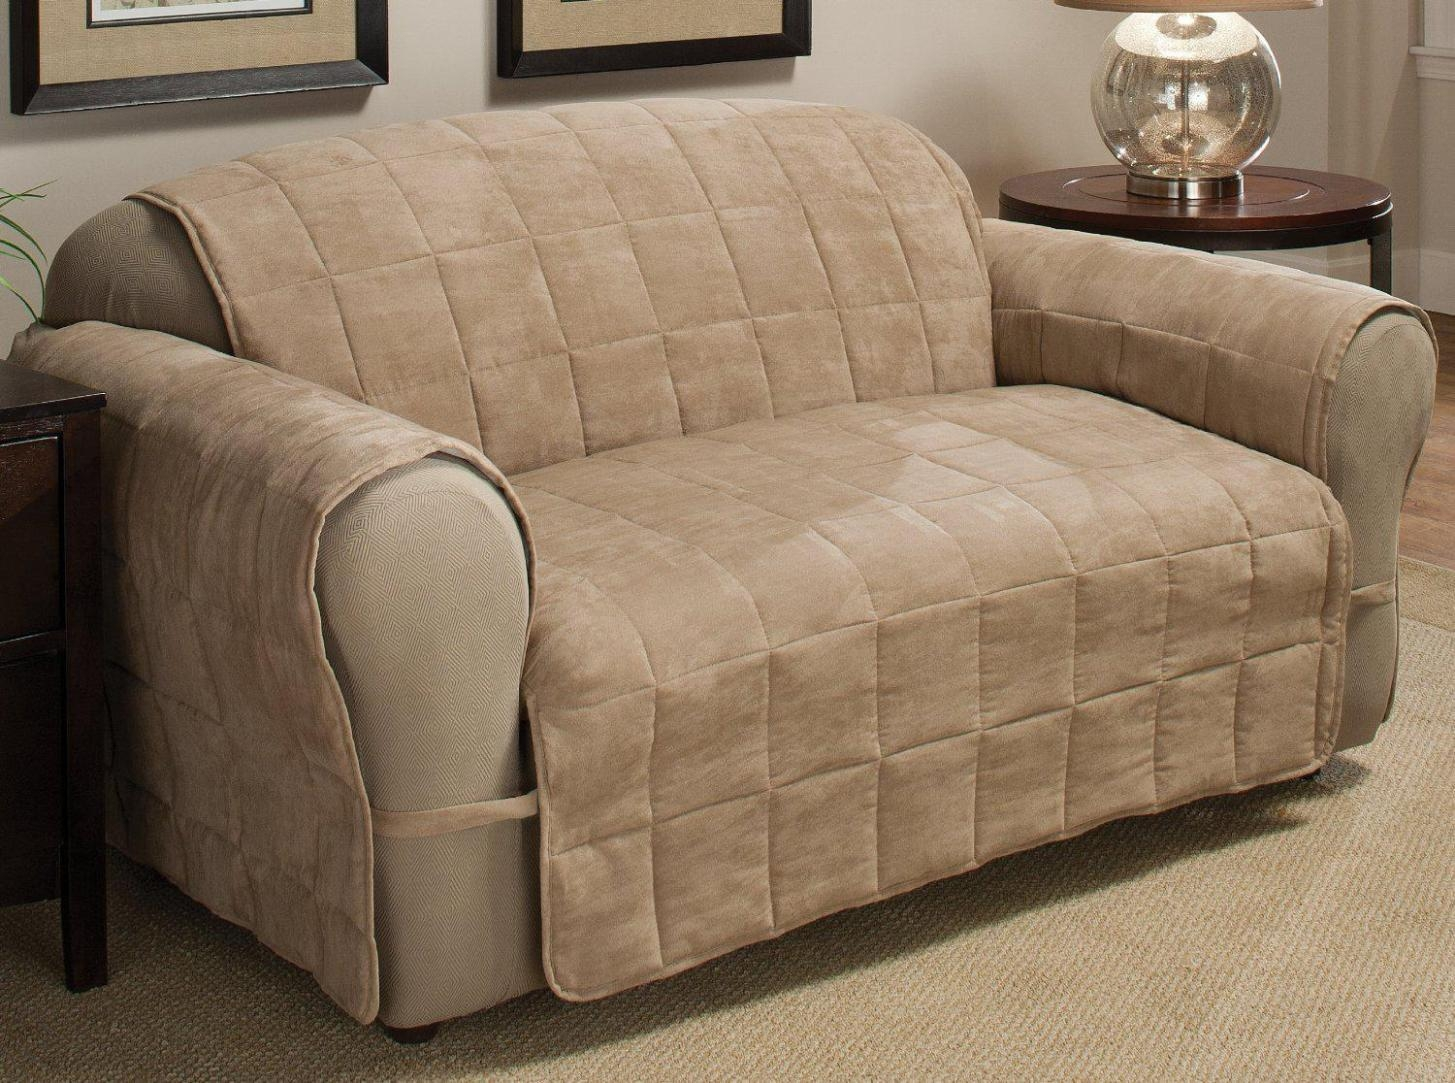 Sofas Center : Recliner Sofa Covers Couch Target Loveseat Awesome Pertaining To Slipcover For Recliner Sofas (View 11 of 20)